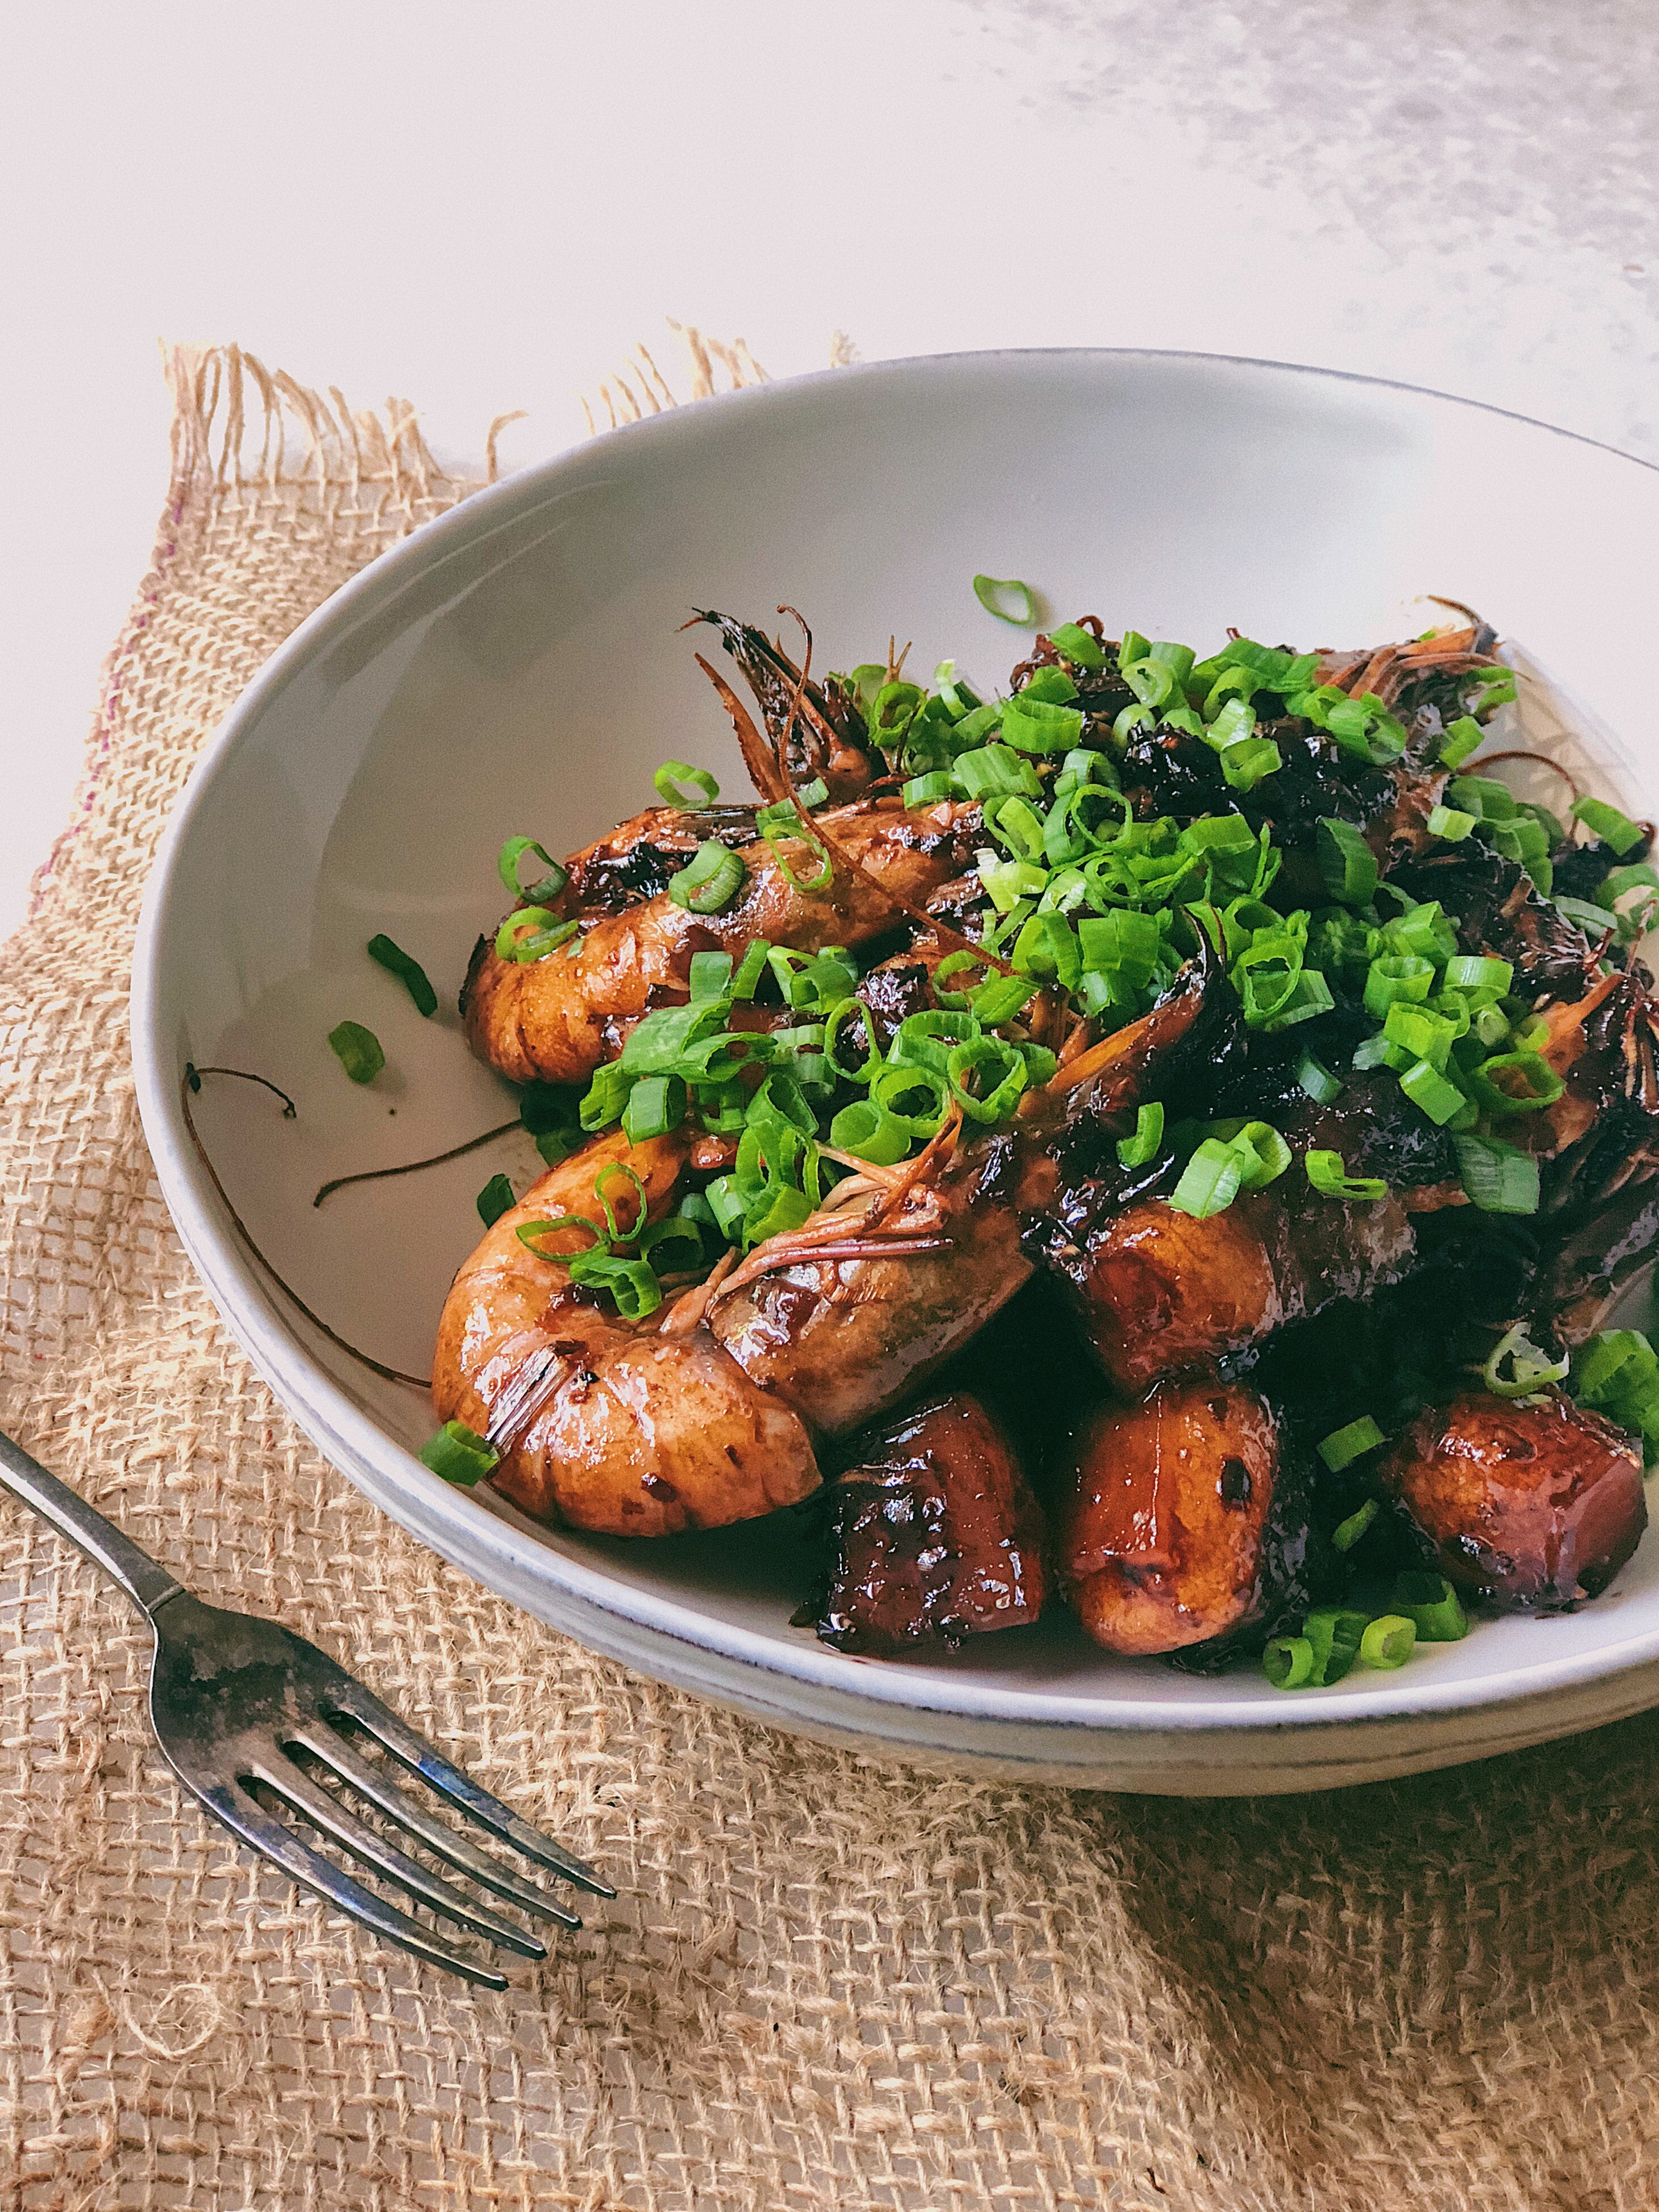 Prawns and Pork Belly